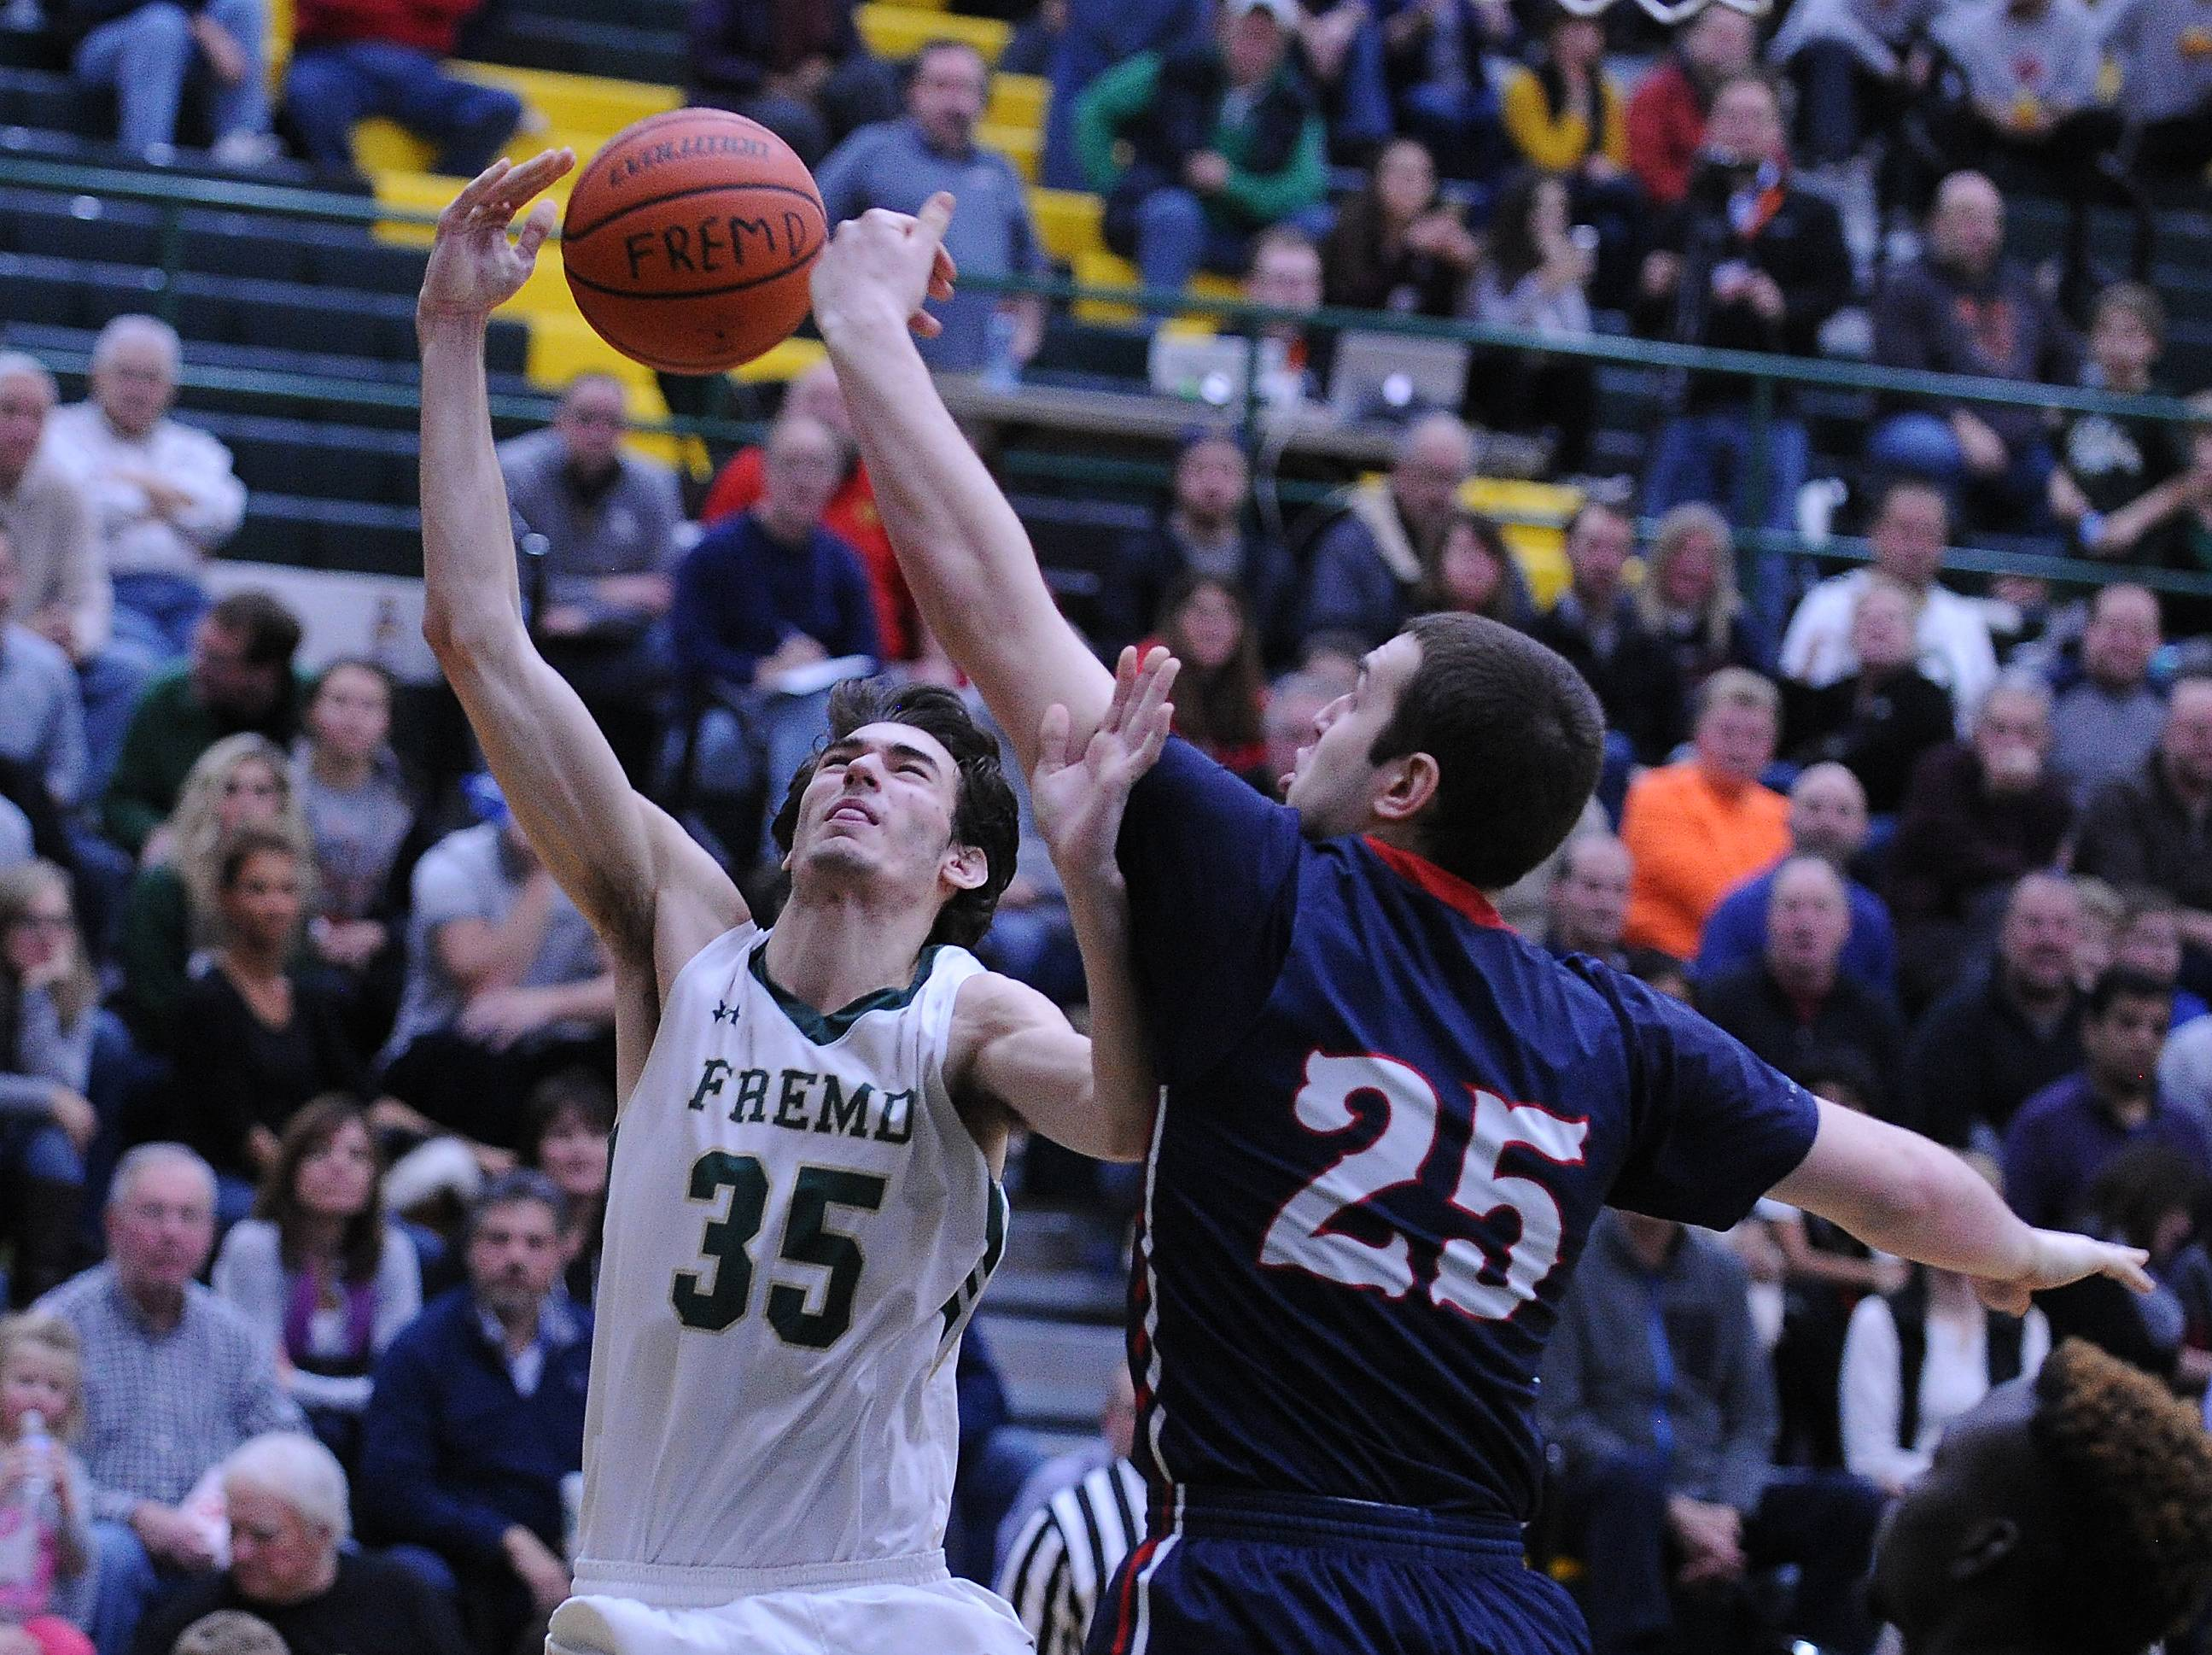 Conant's Ryan Davis slaps the ball away from Fremd's Brian Dompke as he drives for the basket in boys varsity basketball action at Fremd on Friday.